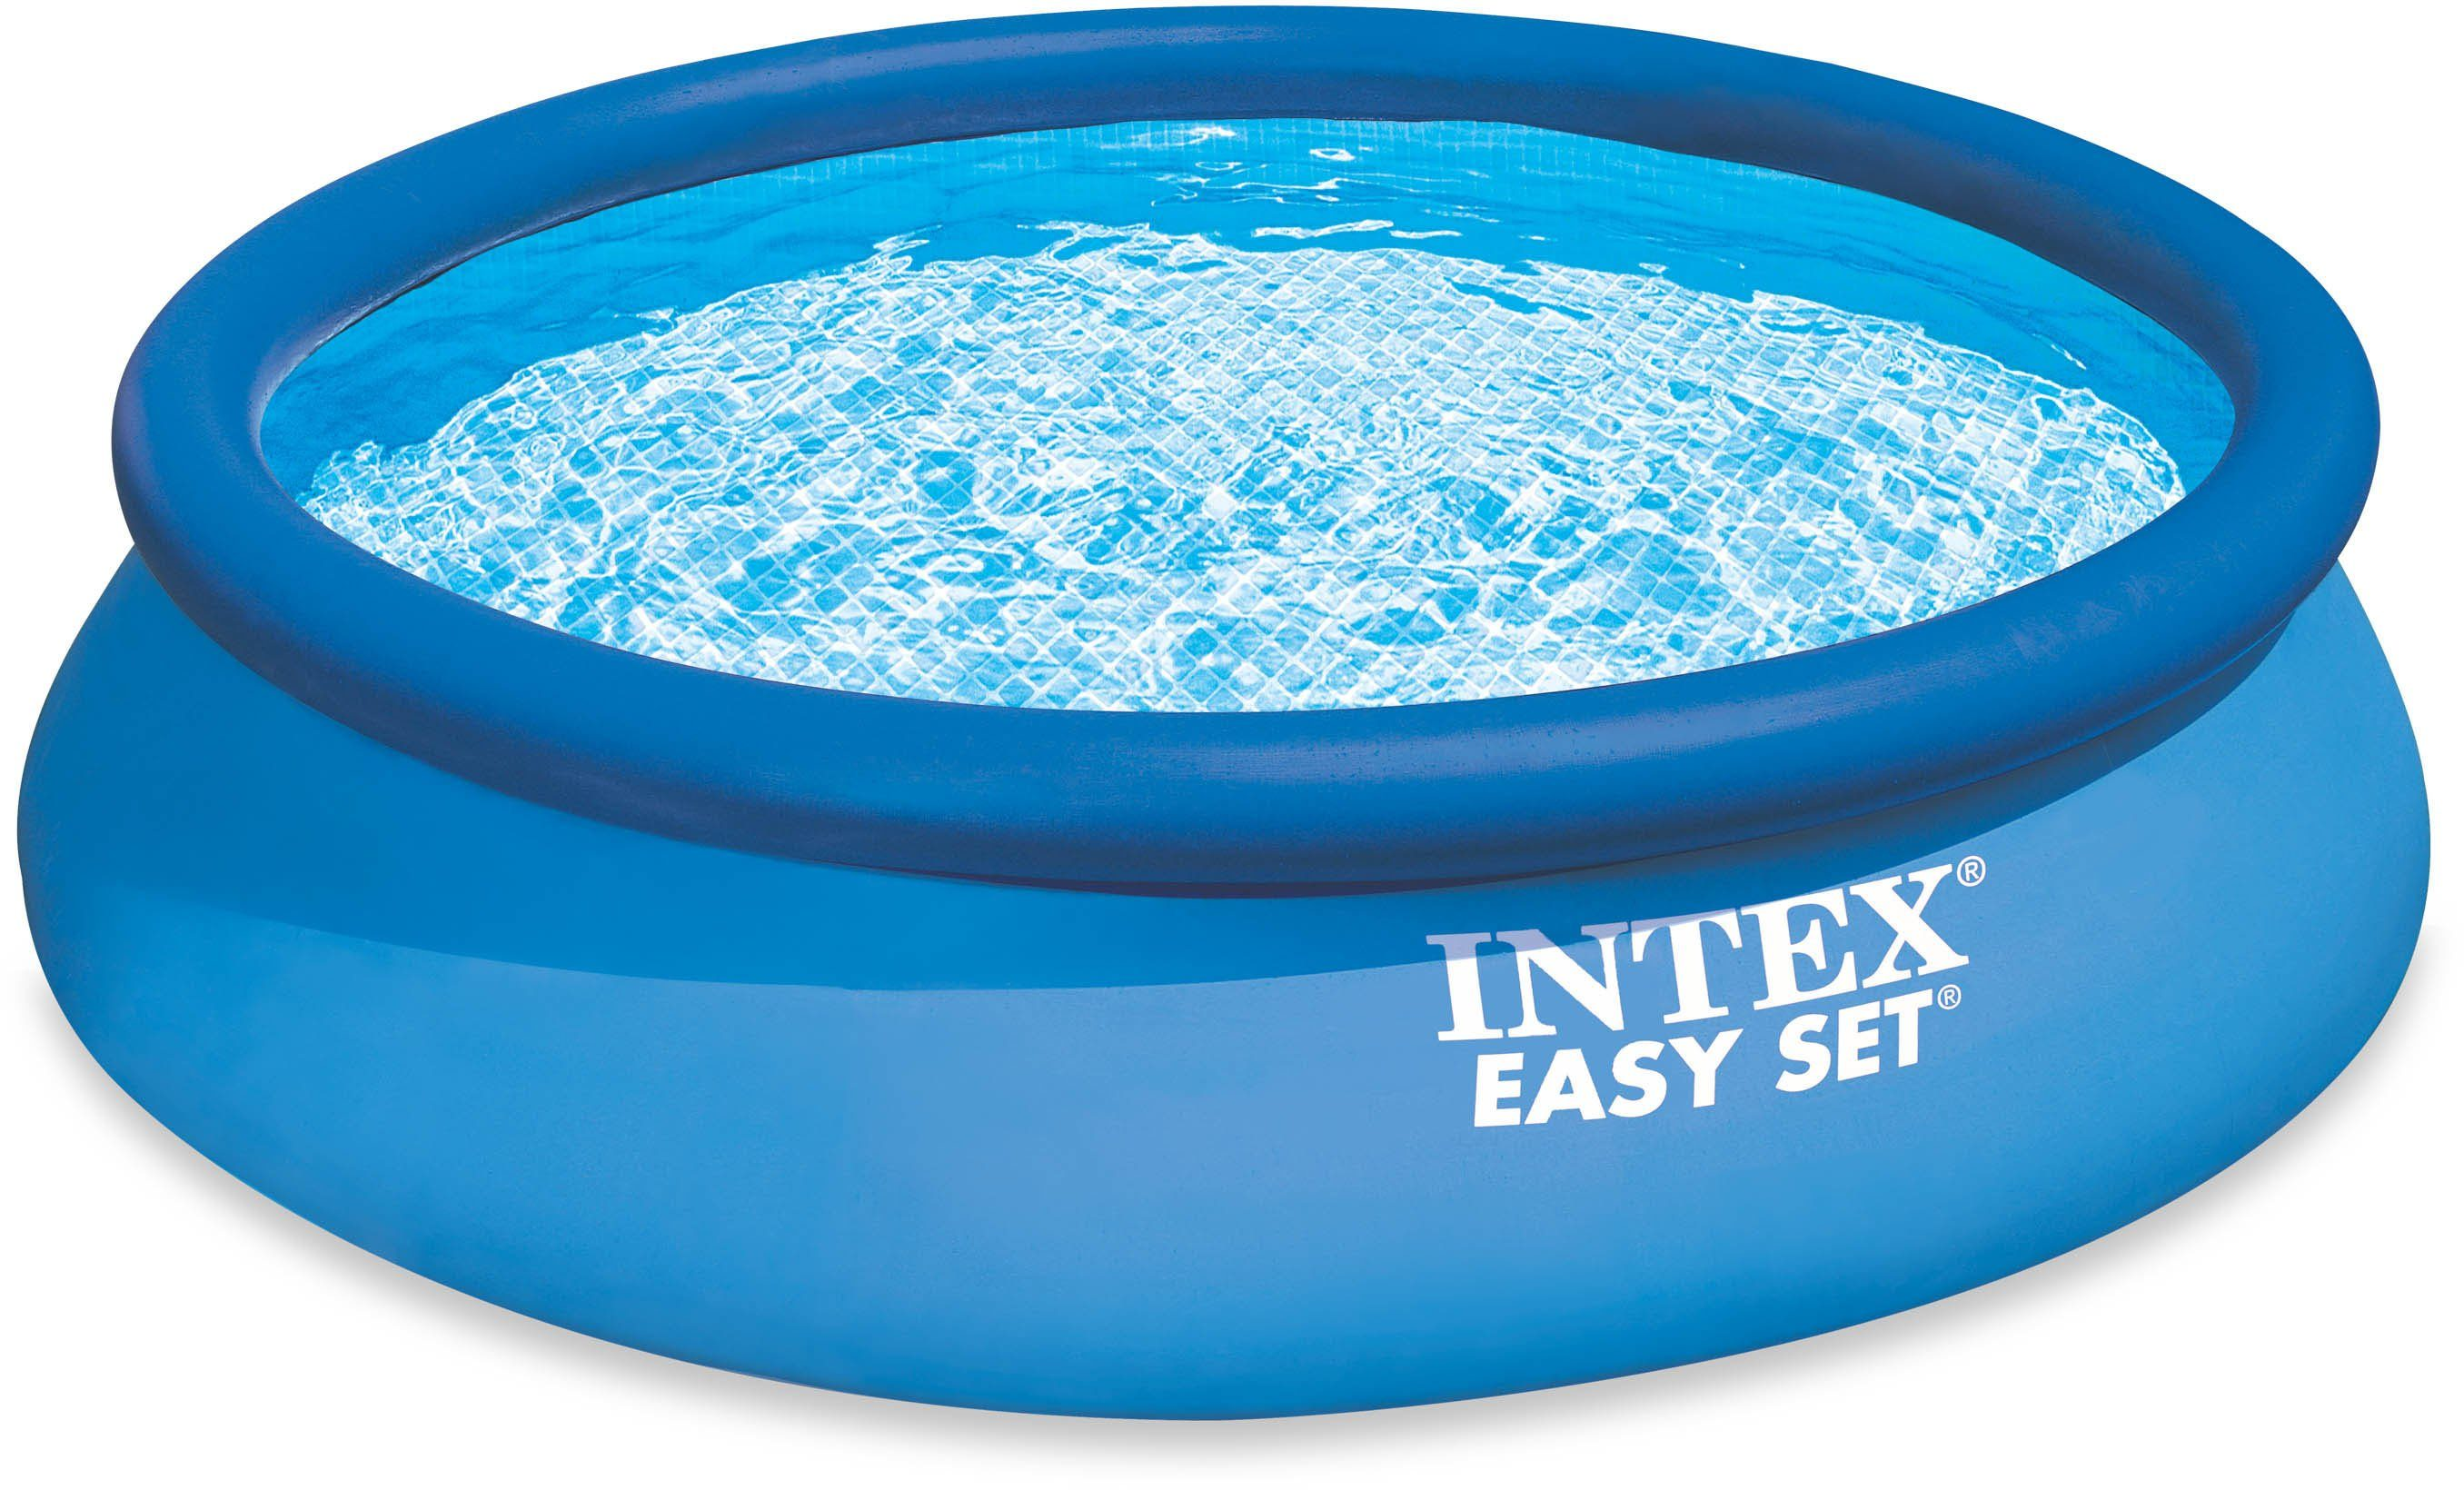 Intex Pool-Set, mit Kartuschenfilteranlage, Ø 396 cm, »Easy Set Pool-Set«